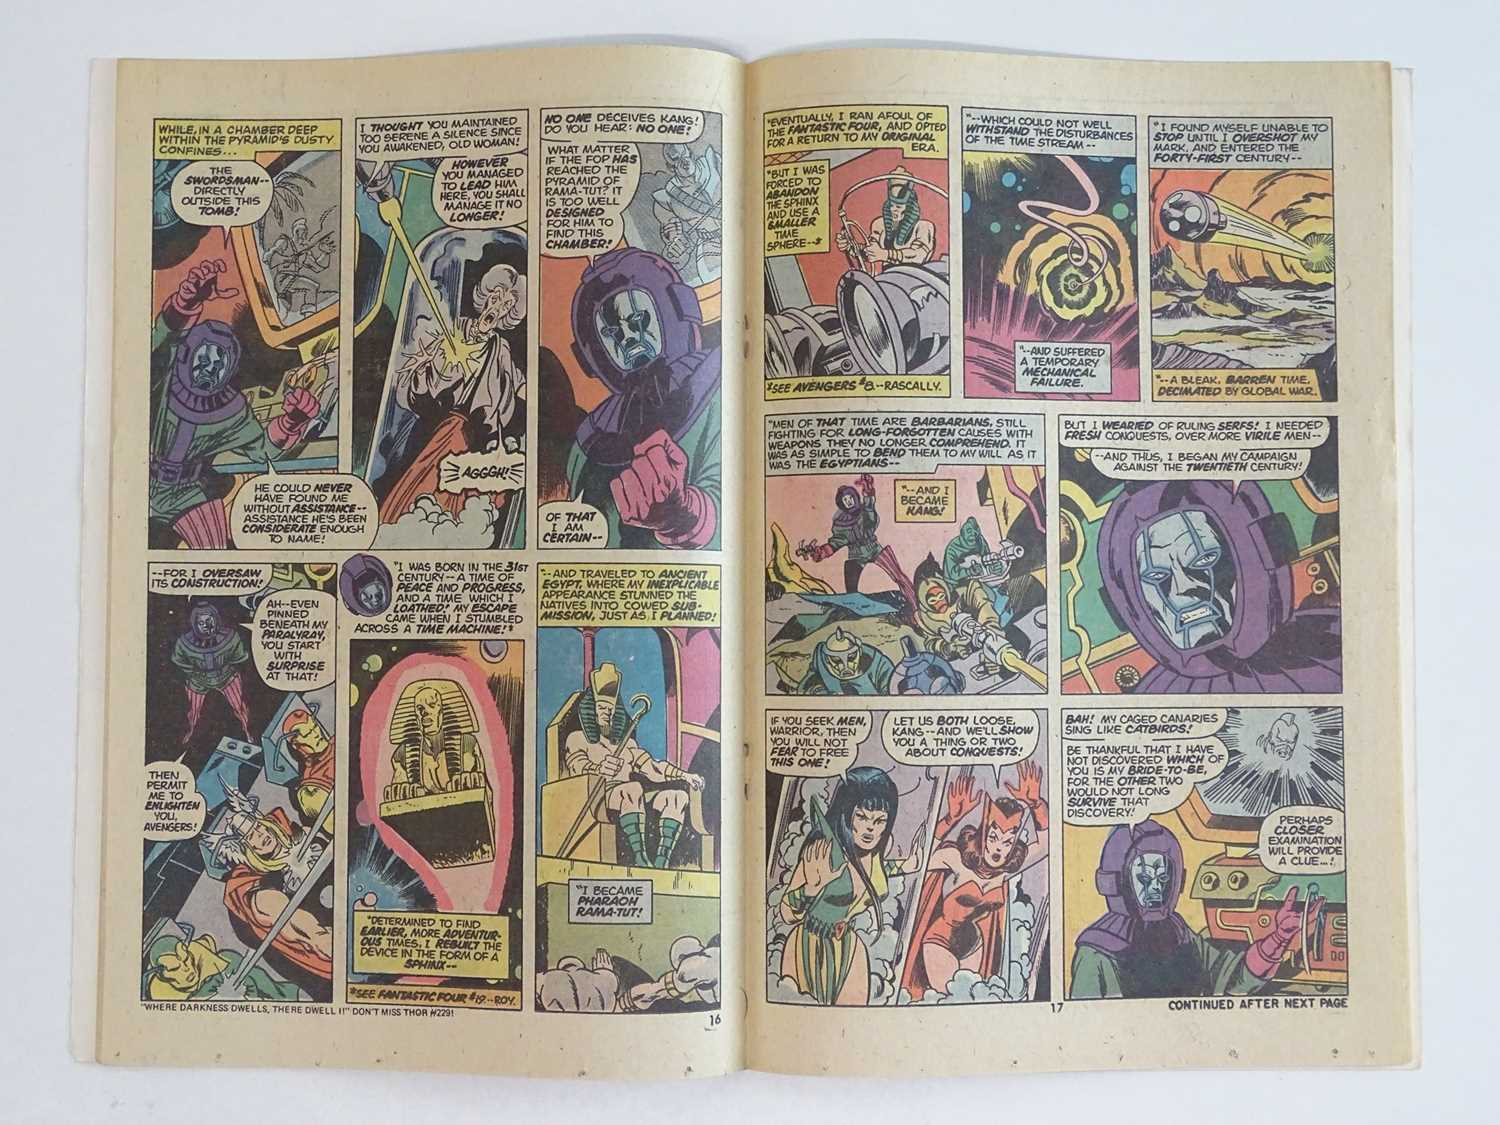 AVENGERS #129 - (1974 - MARVEL) - Classic Kang Cover + Kang the Conqueror, Ram-Tut appearances - Ron - Image 5 of 9